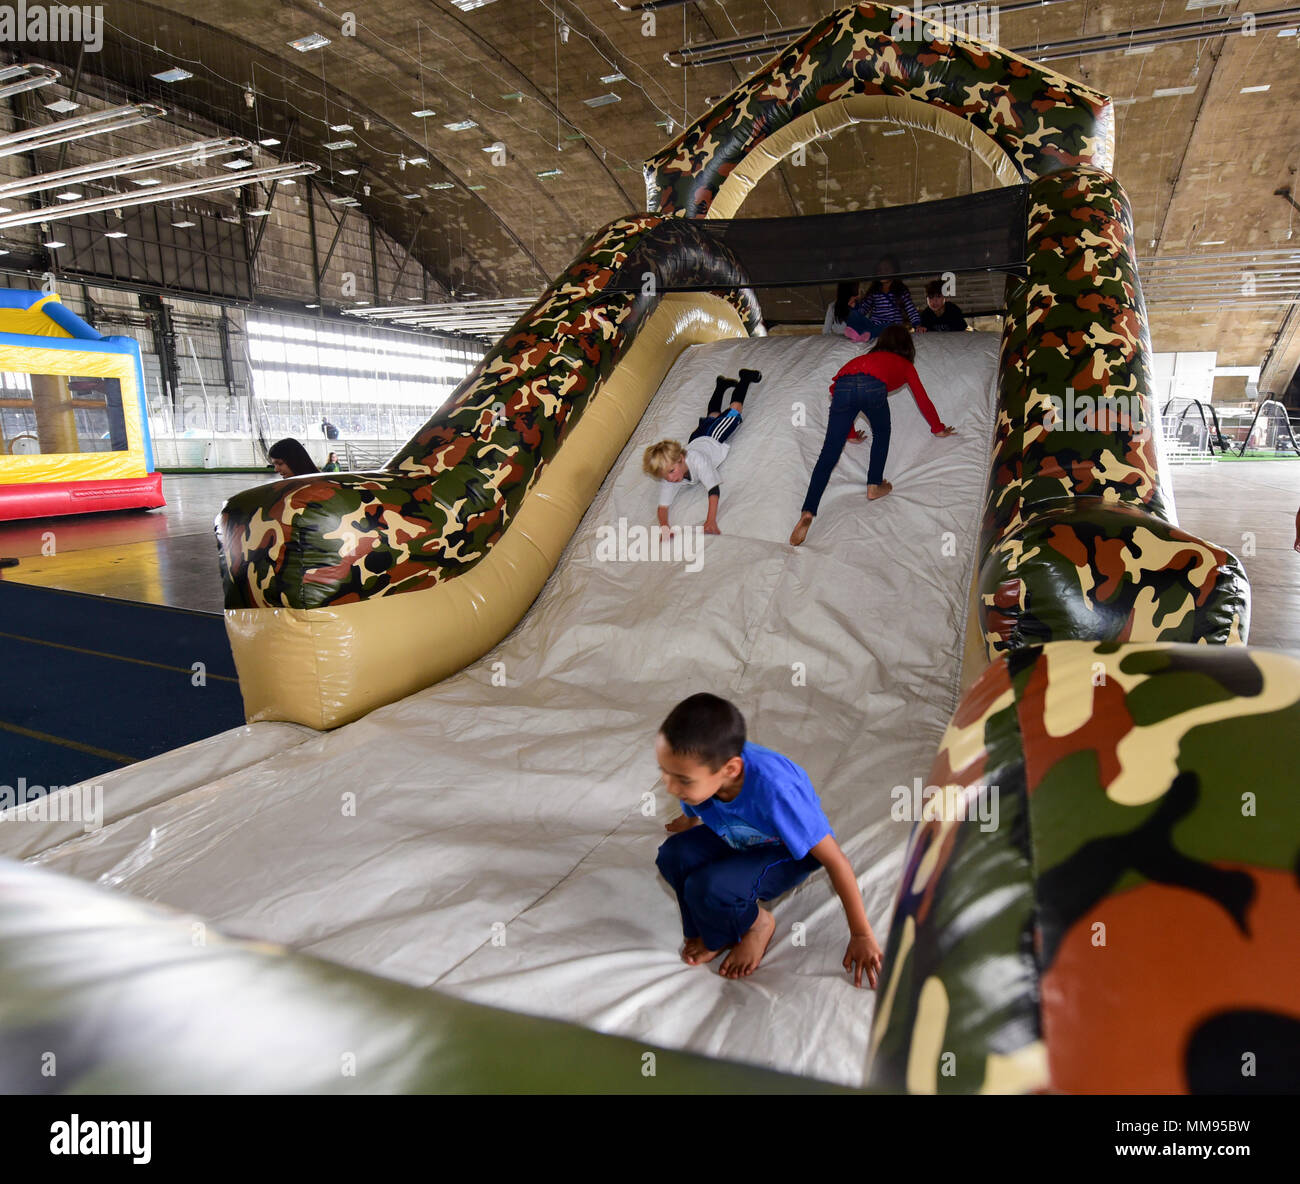 Children play on an inflatable obstacle course during a Base Appreciation Day at Ellsworth Air Force Base, S.D., Sept. 16, 2017. Activities at the event included bouncy castles, bean-bag toss and ladder ball. (U.S. Air Force photo by Airman 1st Class Randahl J. Jenson) - Stock Image